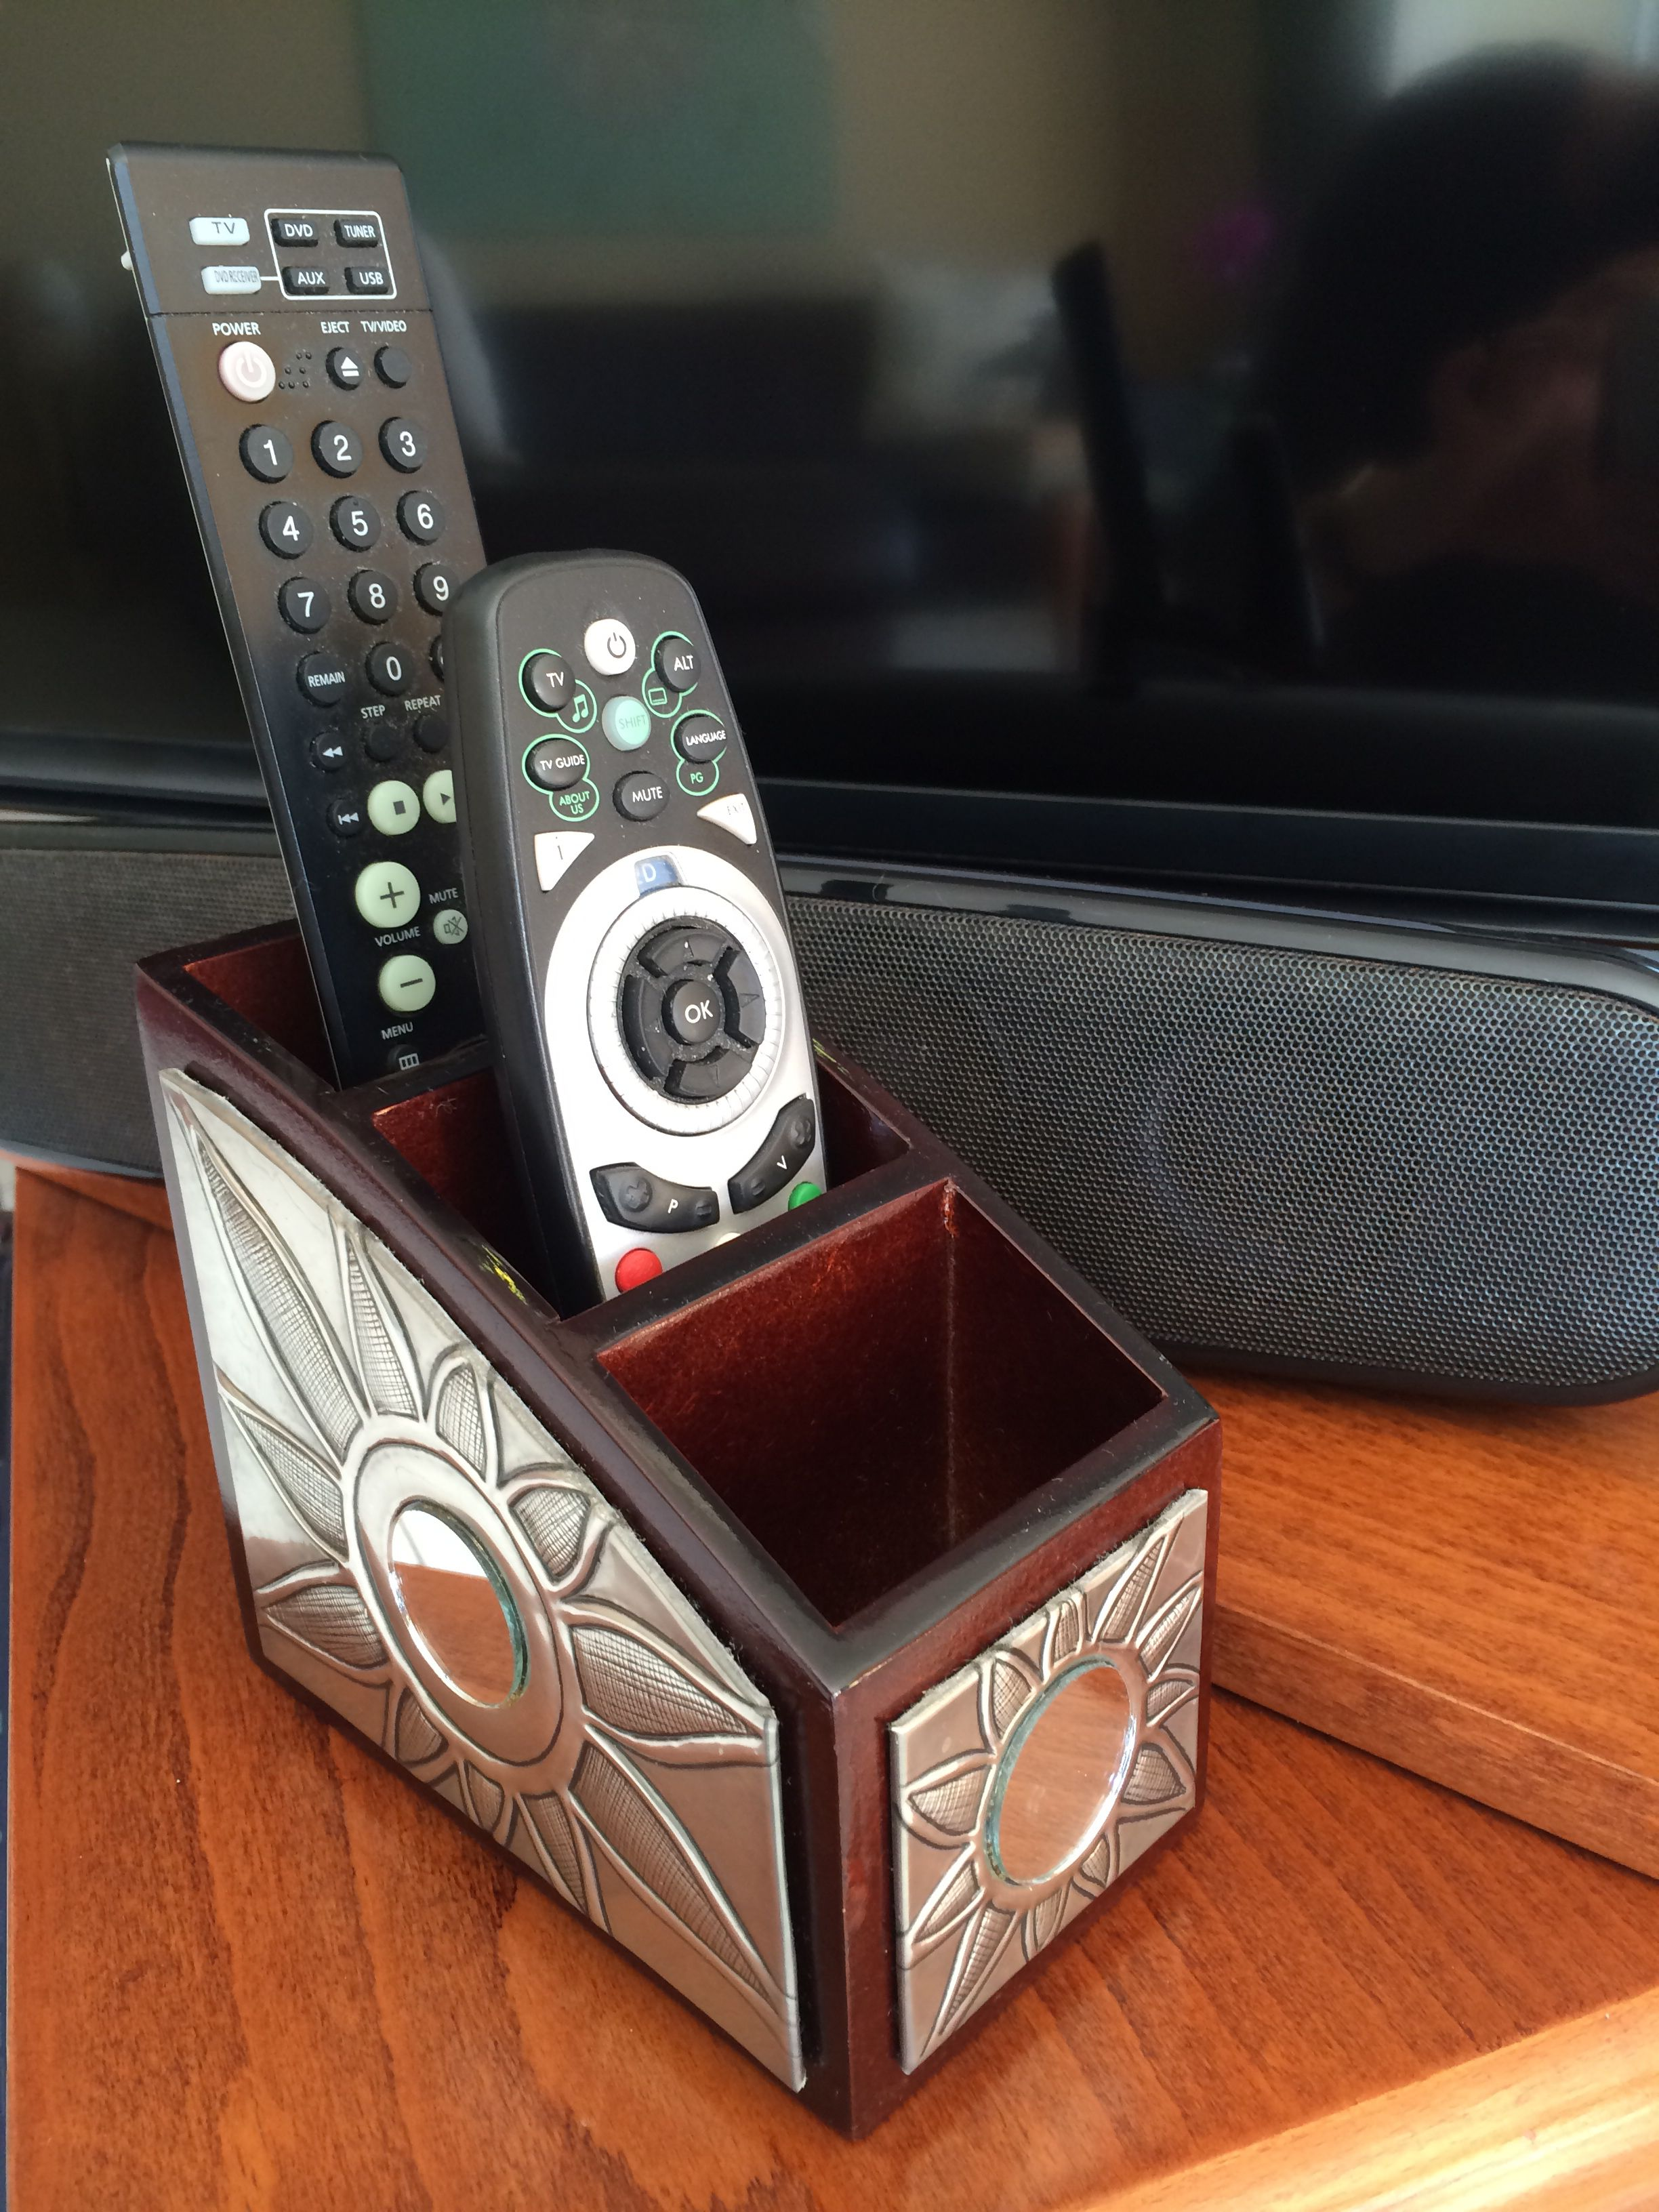 Remote Control Holder Decorated With Pewter Embossed Design Made By Lee Www Thepewterroom Co Za Pewter Art Aluminum Foil Art Metal Embossing